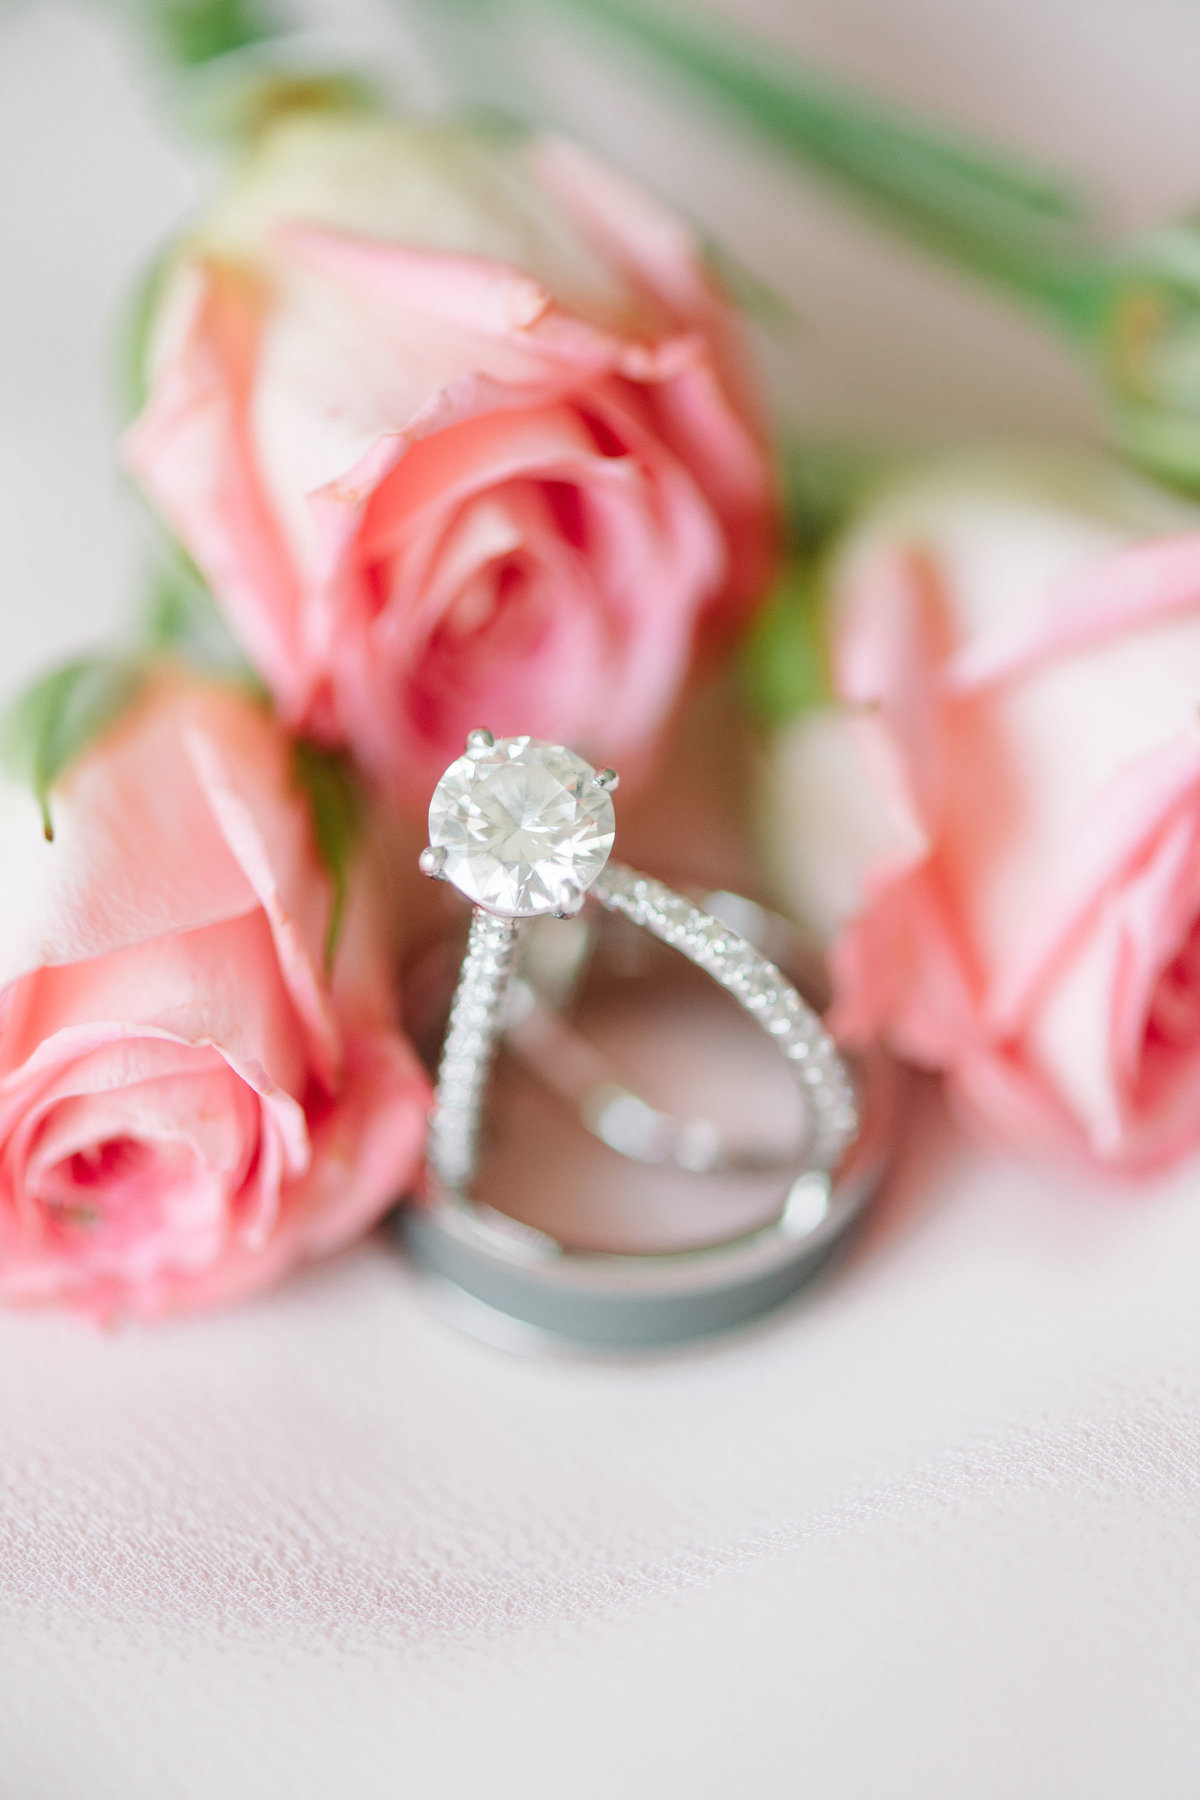 Classic Diamond Ring Pink Roses